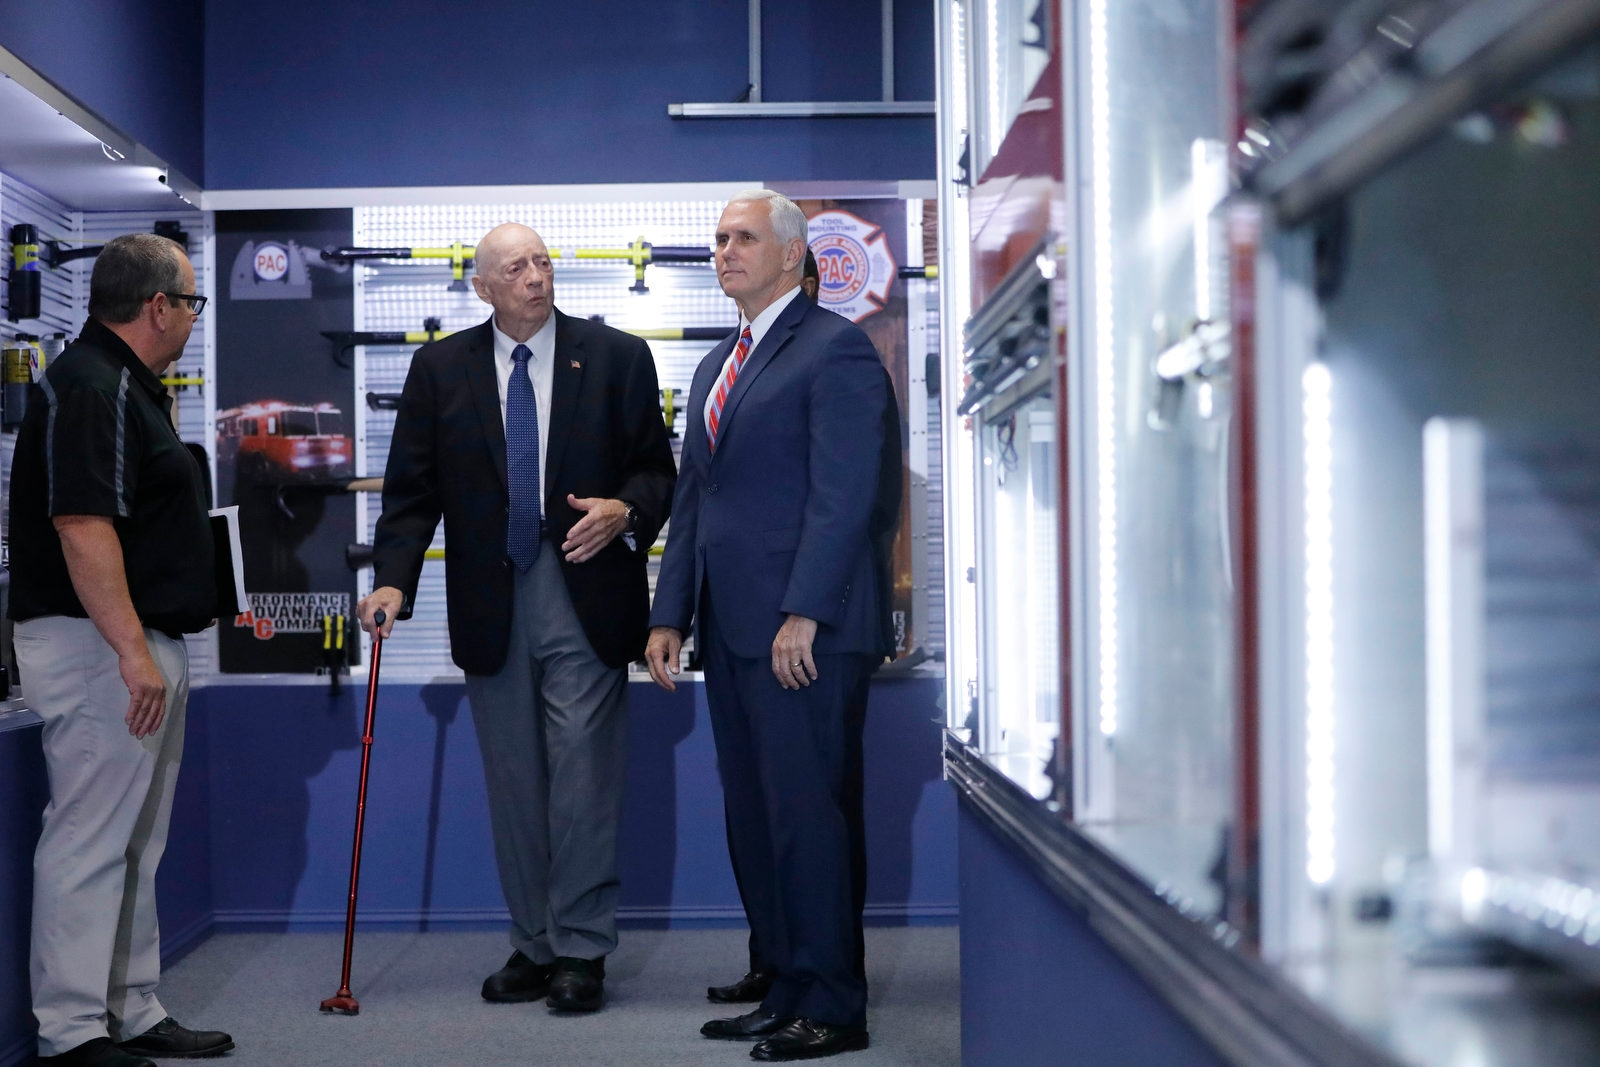 Vice President Pence tours Performance Advantage Company in Lancaster with company founder Dick Young, center, and company President Jim Everett, Tuesday, Oct. 17, 2017.